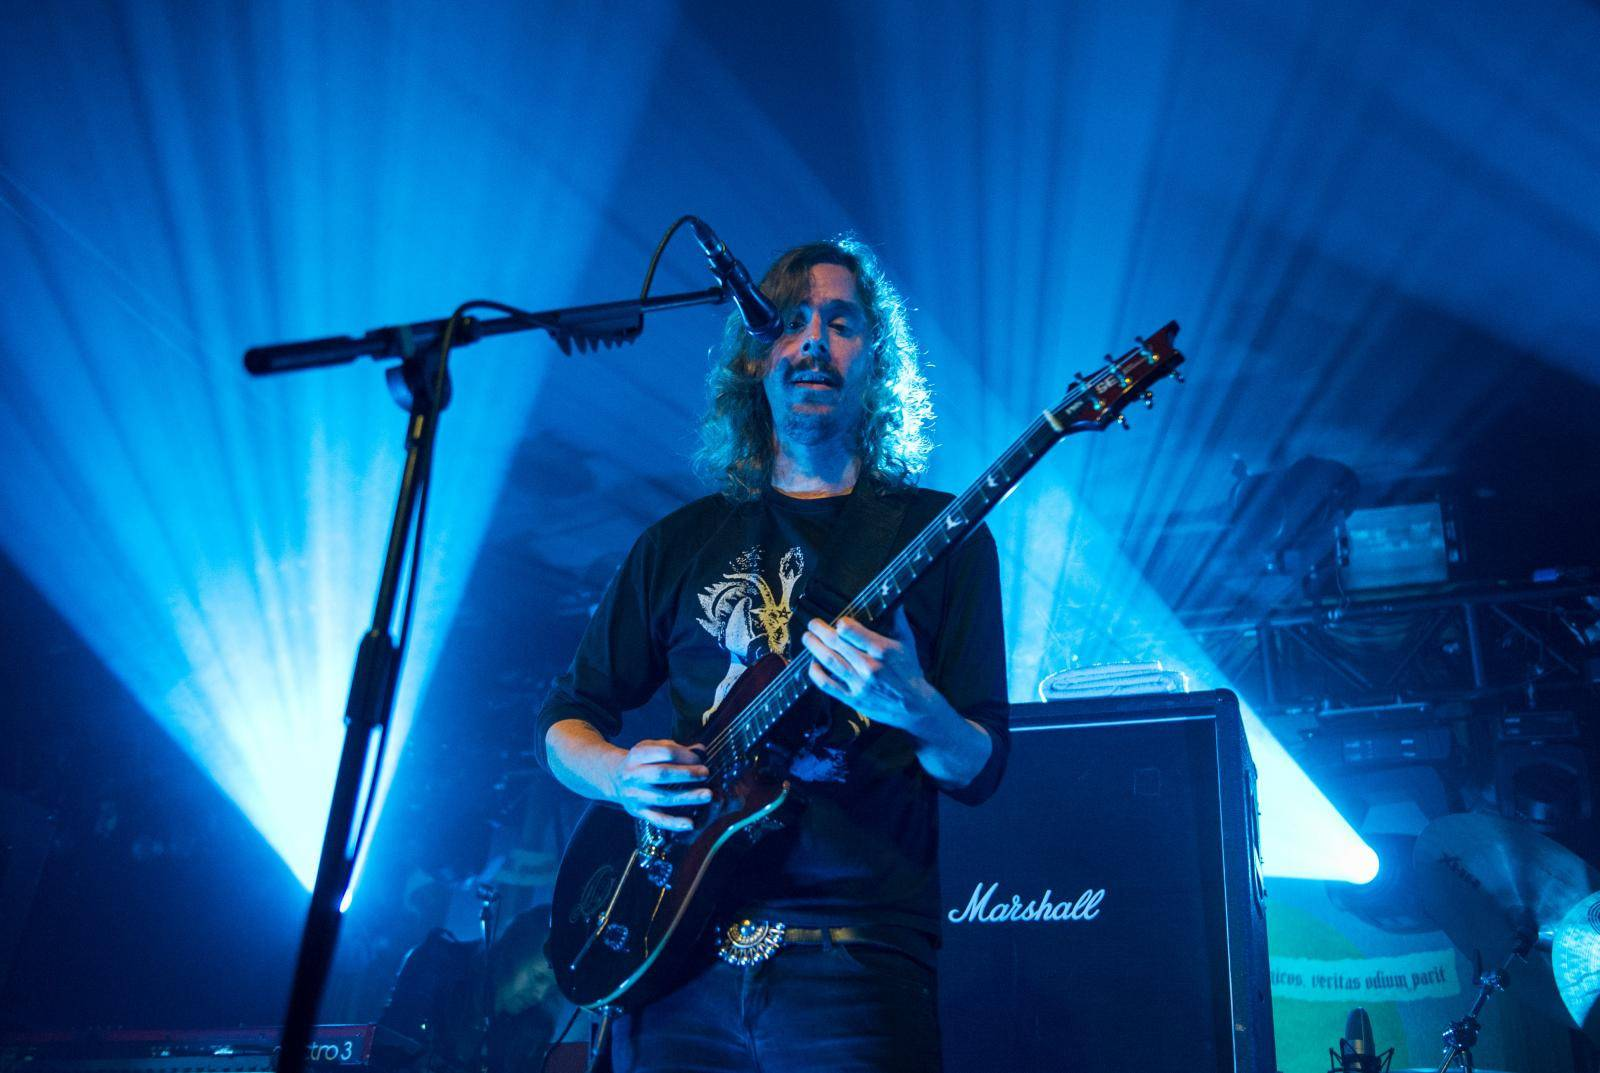 Opeth in concert - Birmingham